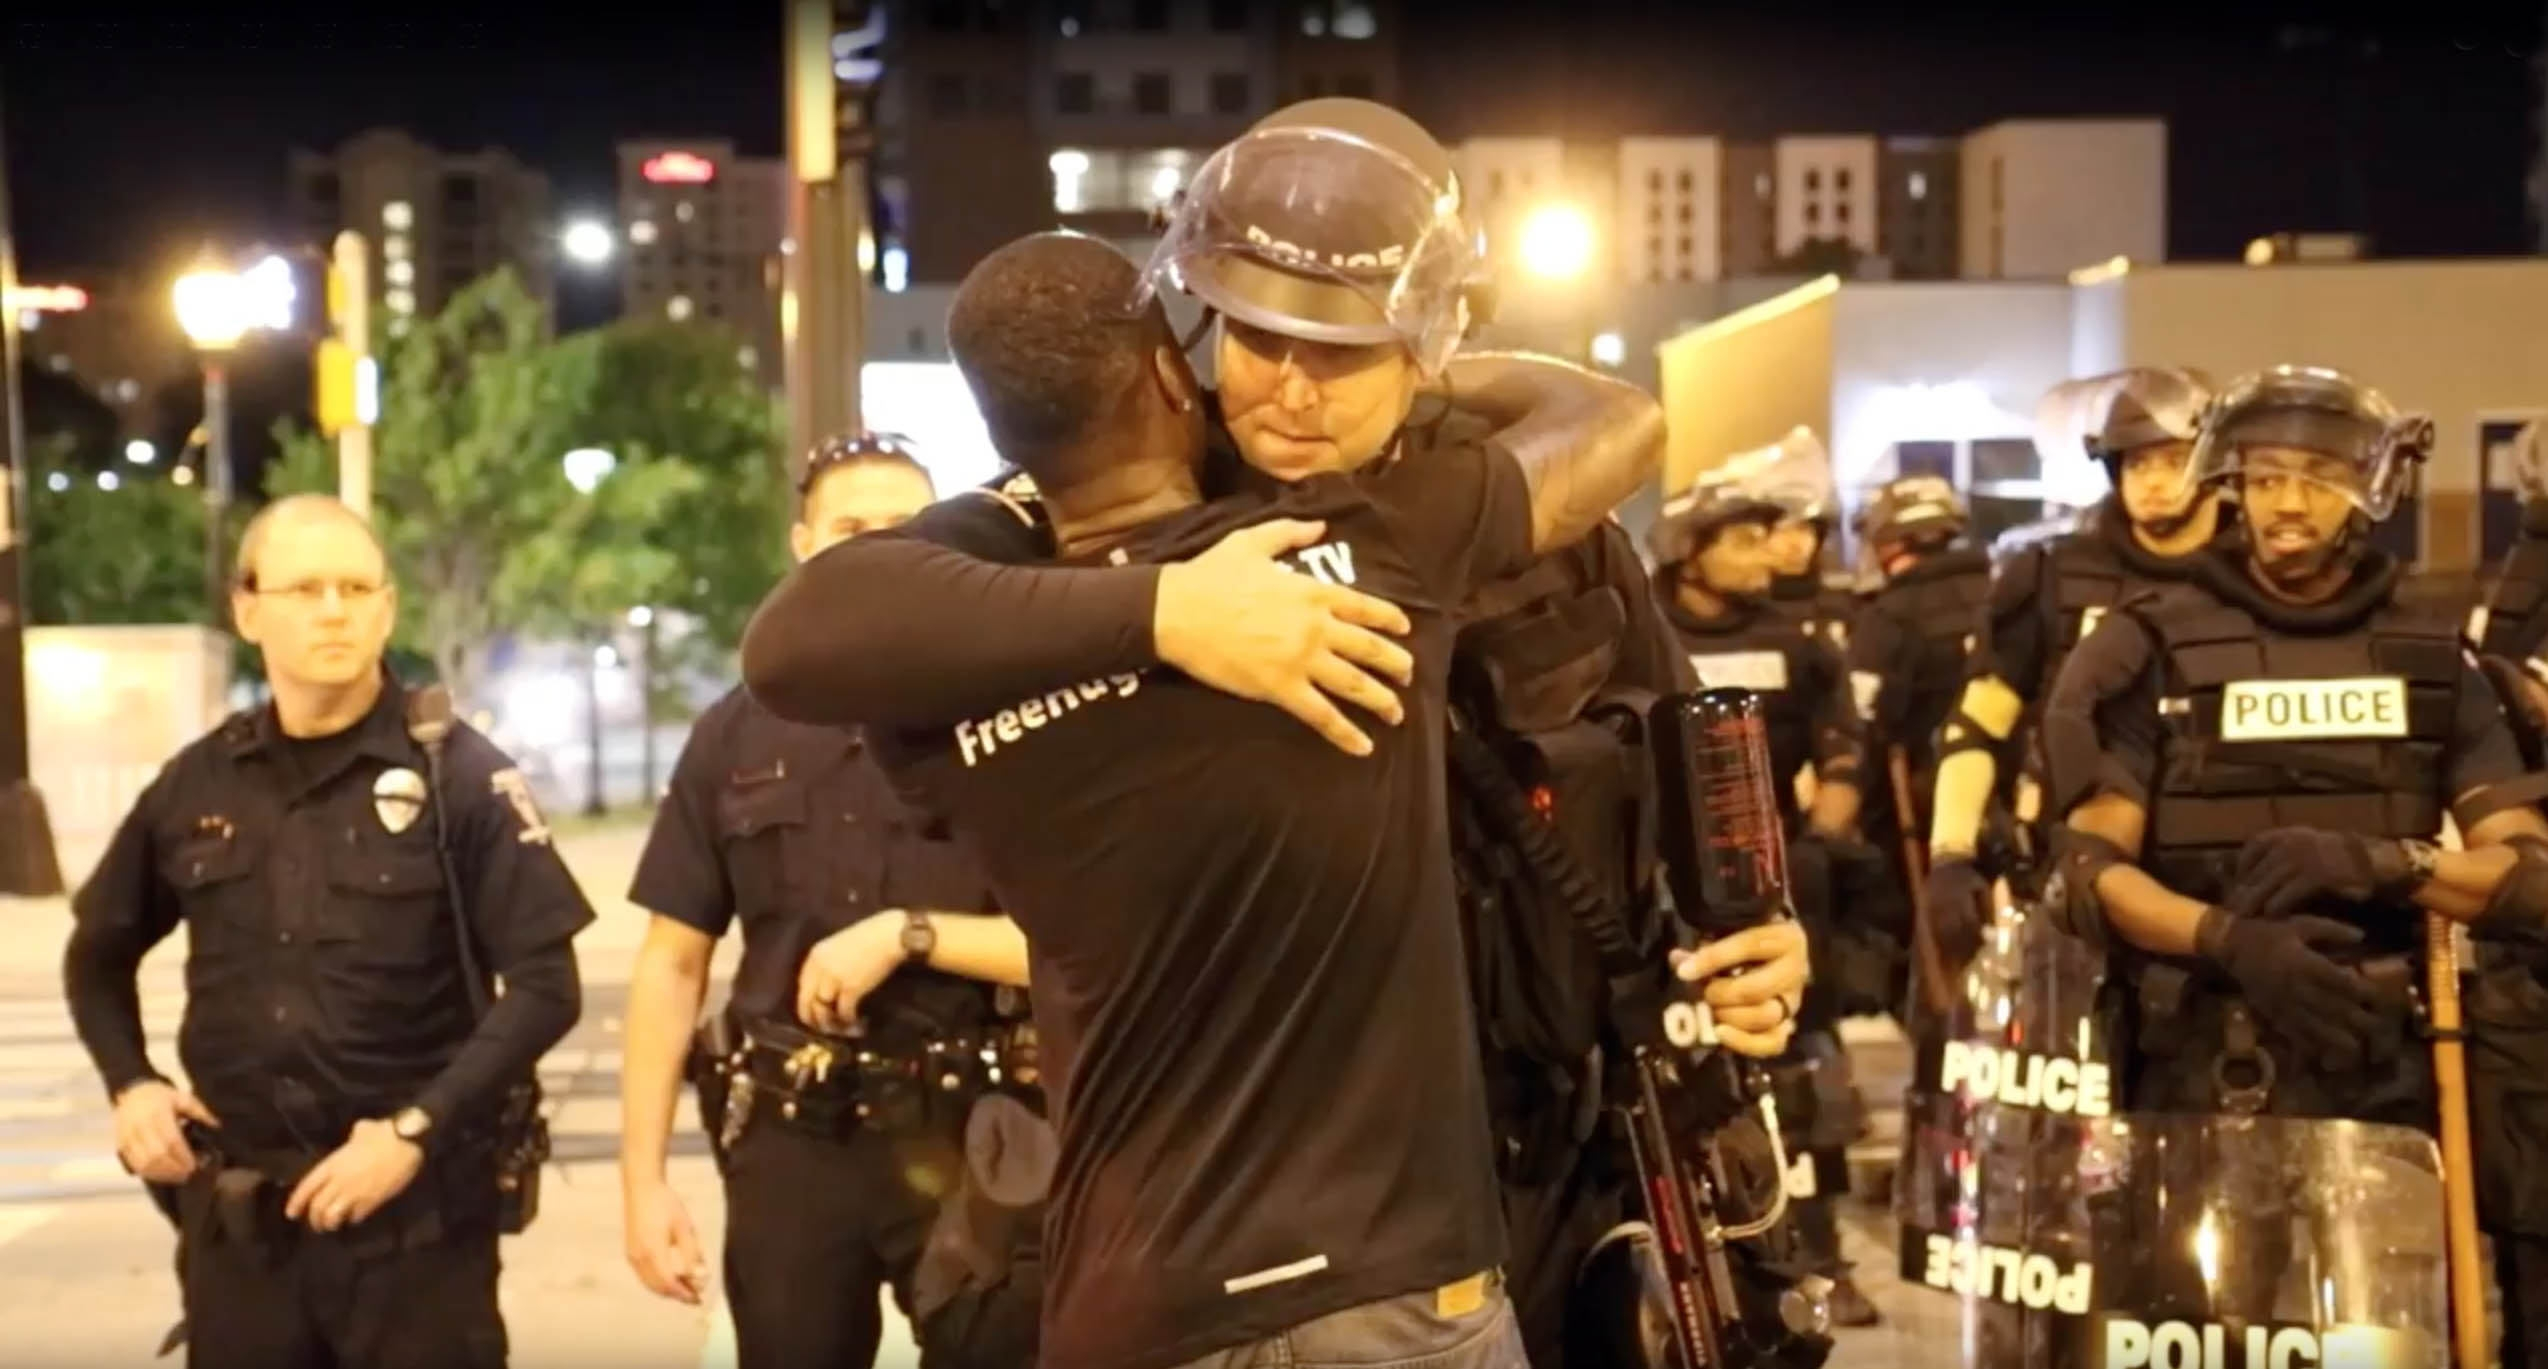 The imposing Charlotte-Mecklenburg, N.C. police officer in full riot gear who gets a þÄúfree hugþÄù in the midst of riots and turmoil in that city has a Buffalo connection. The officer, Christopher Frunzi, is from Hamburg and graduated from St. Francis High School in 2002, according to the school.